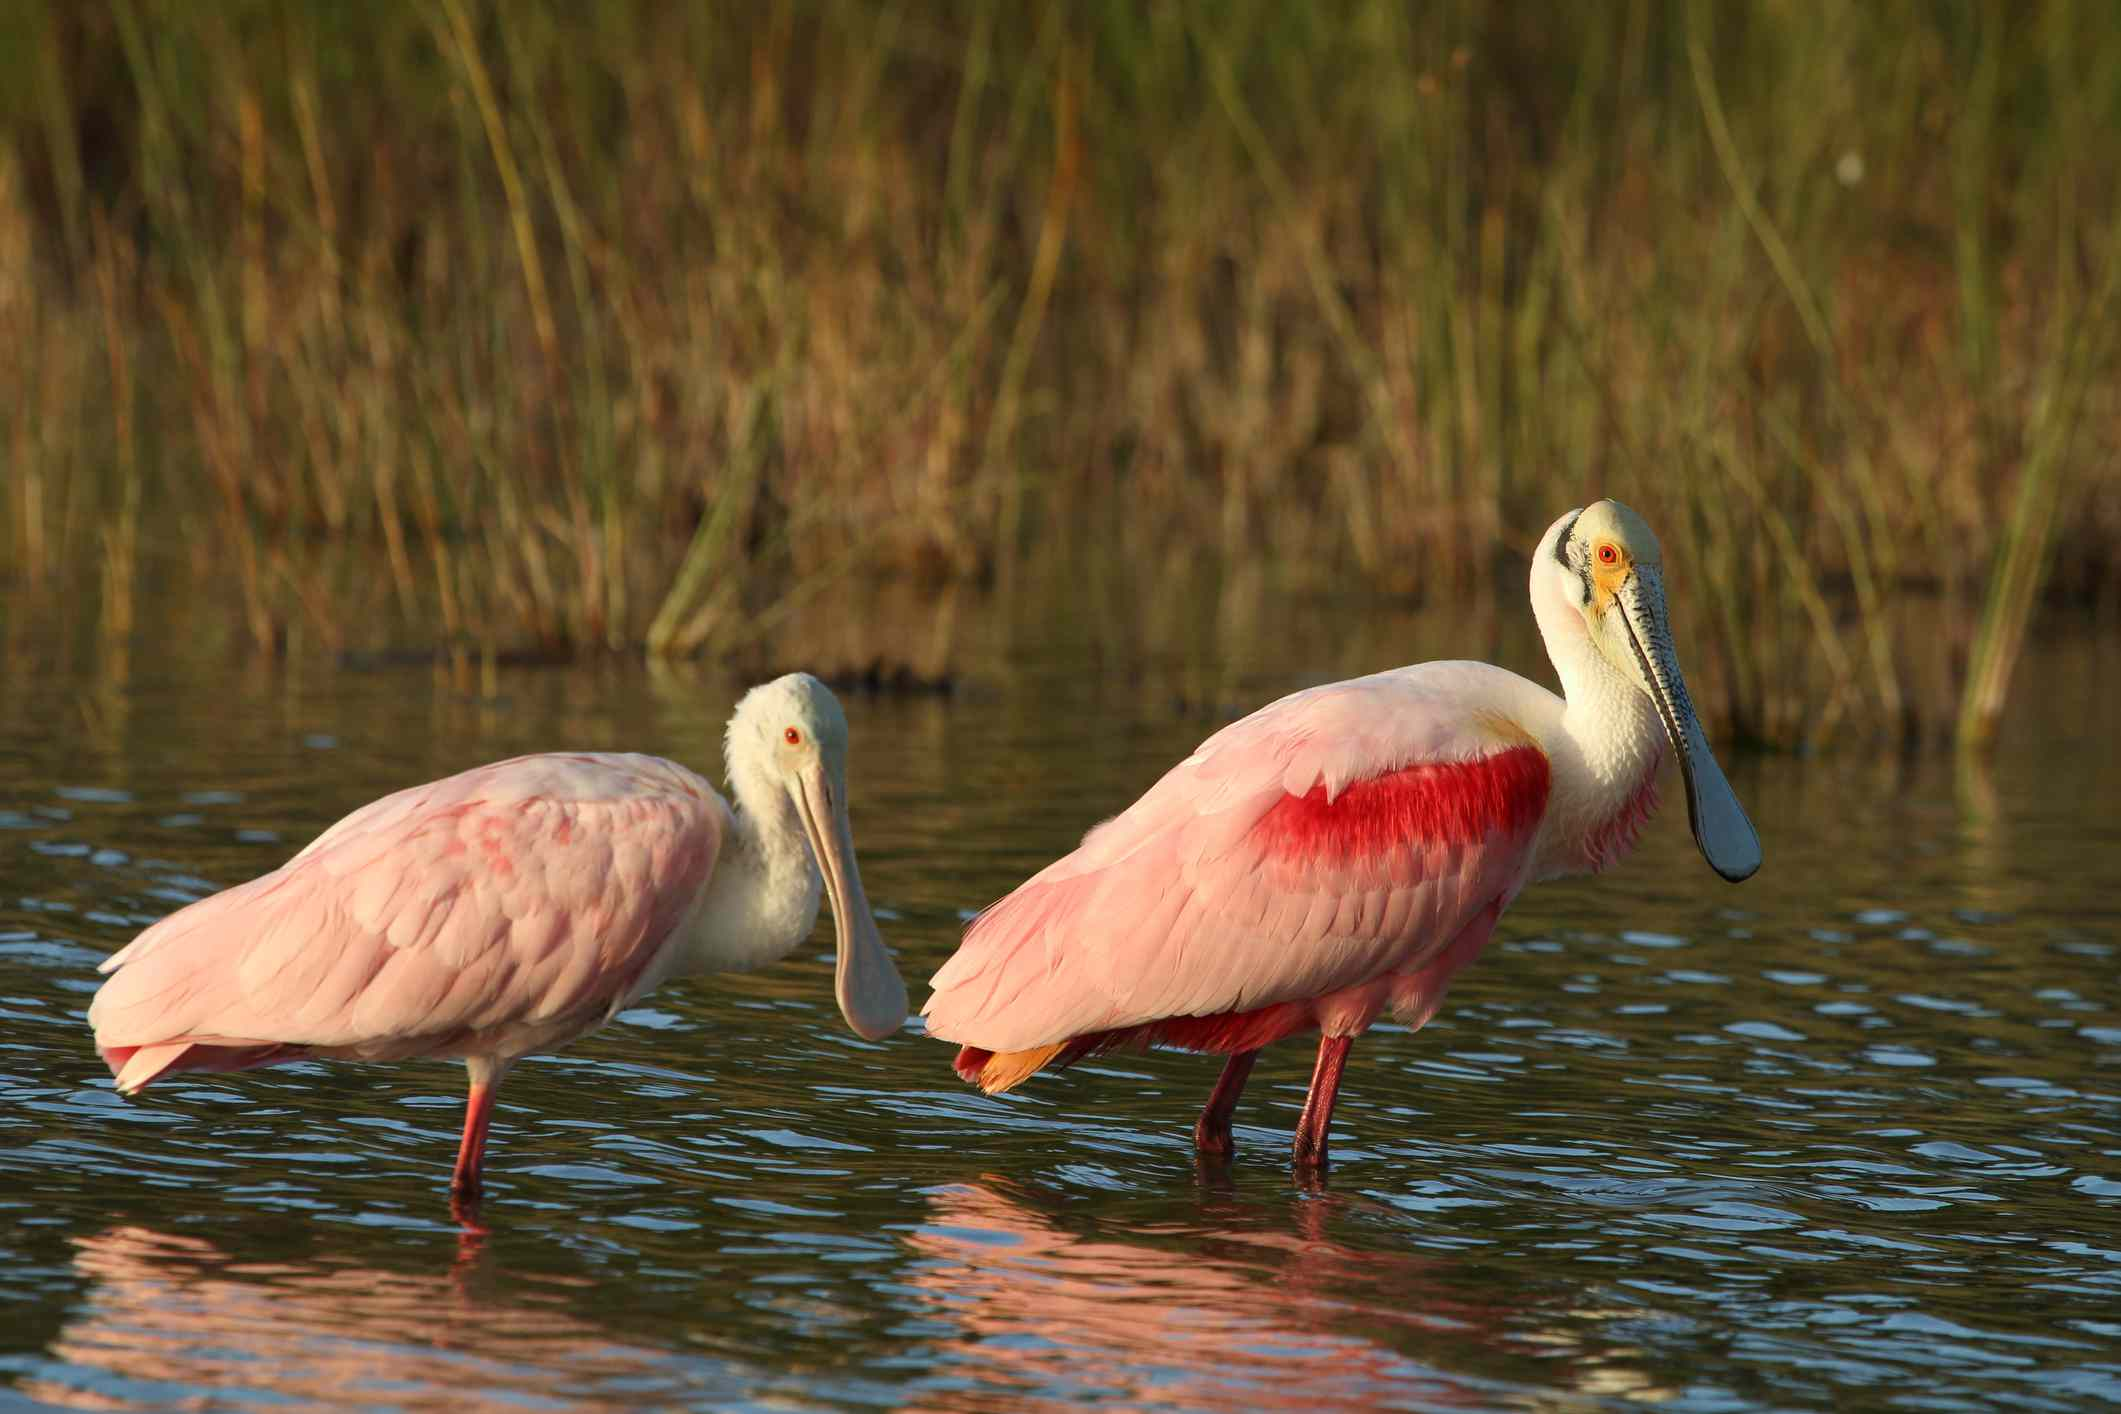 pair of pink roseate spoonbills wading in the water at Everglades National Park, Florida